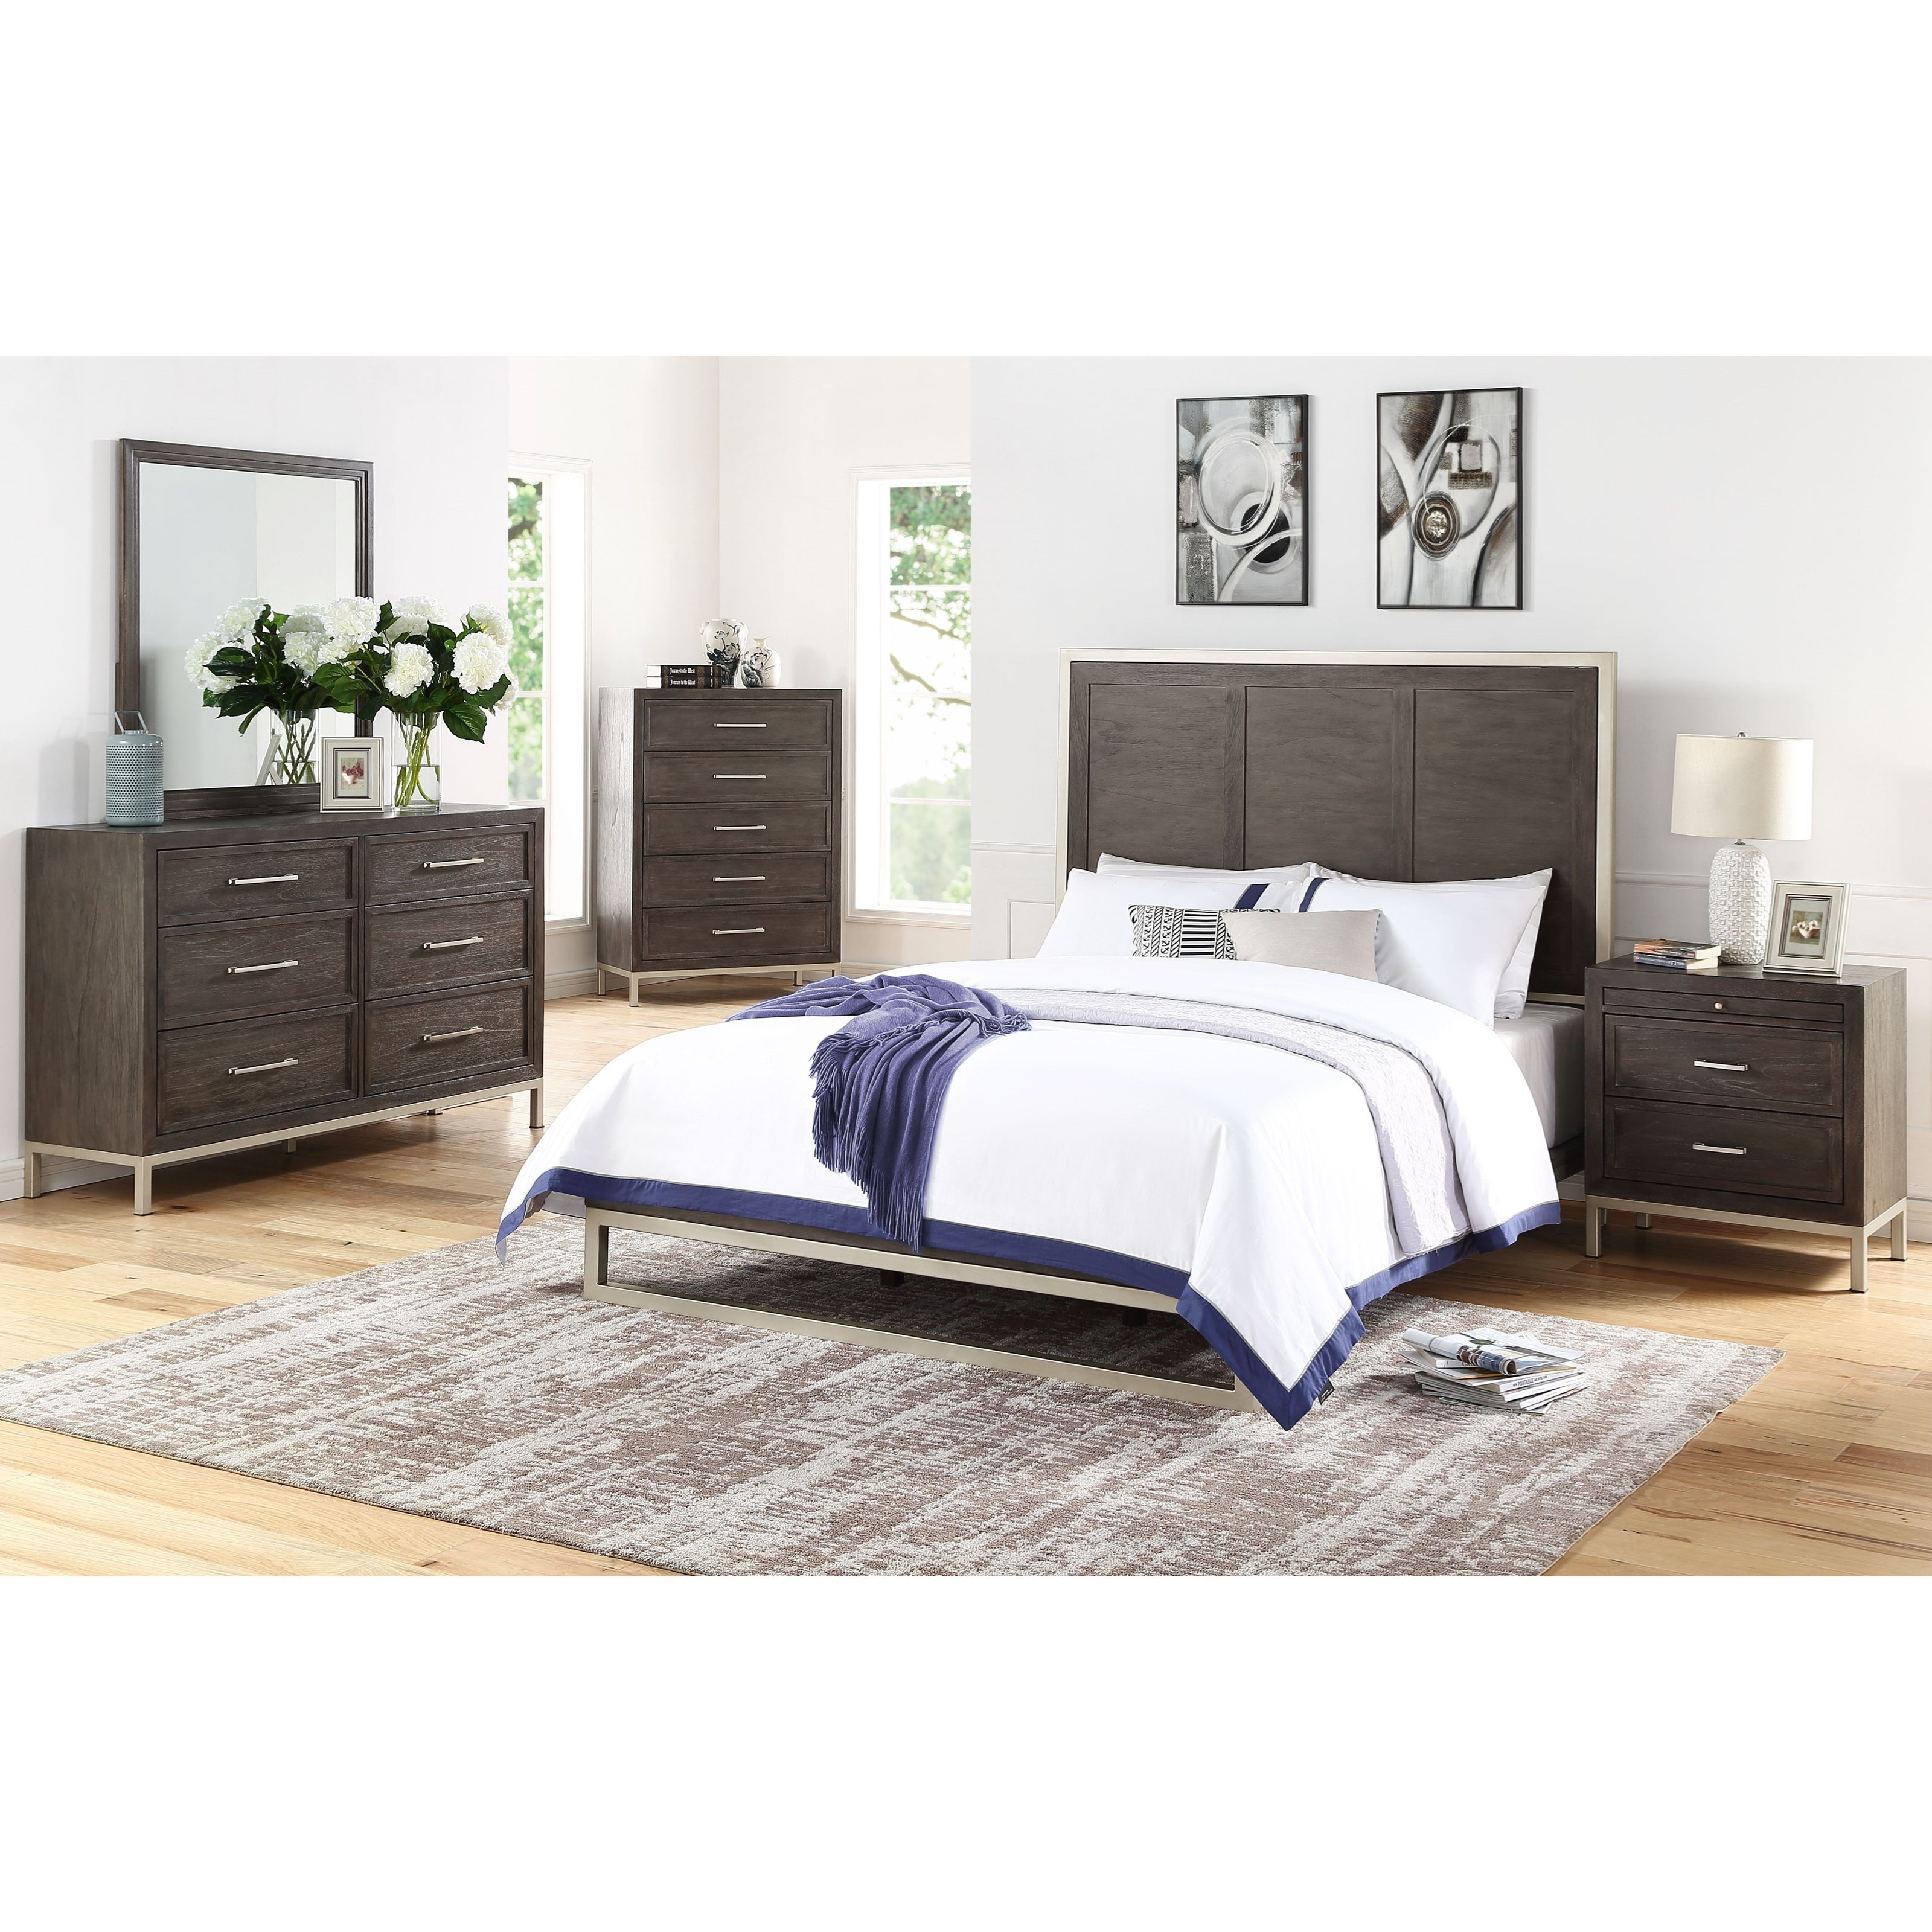 Broomfield Queen Bedroom Group by Steve Silver at Standard Furniture